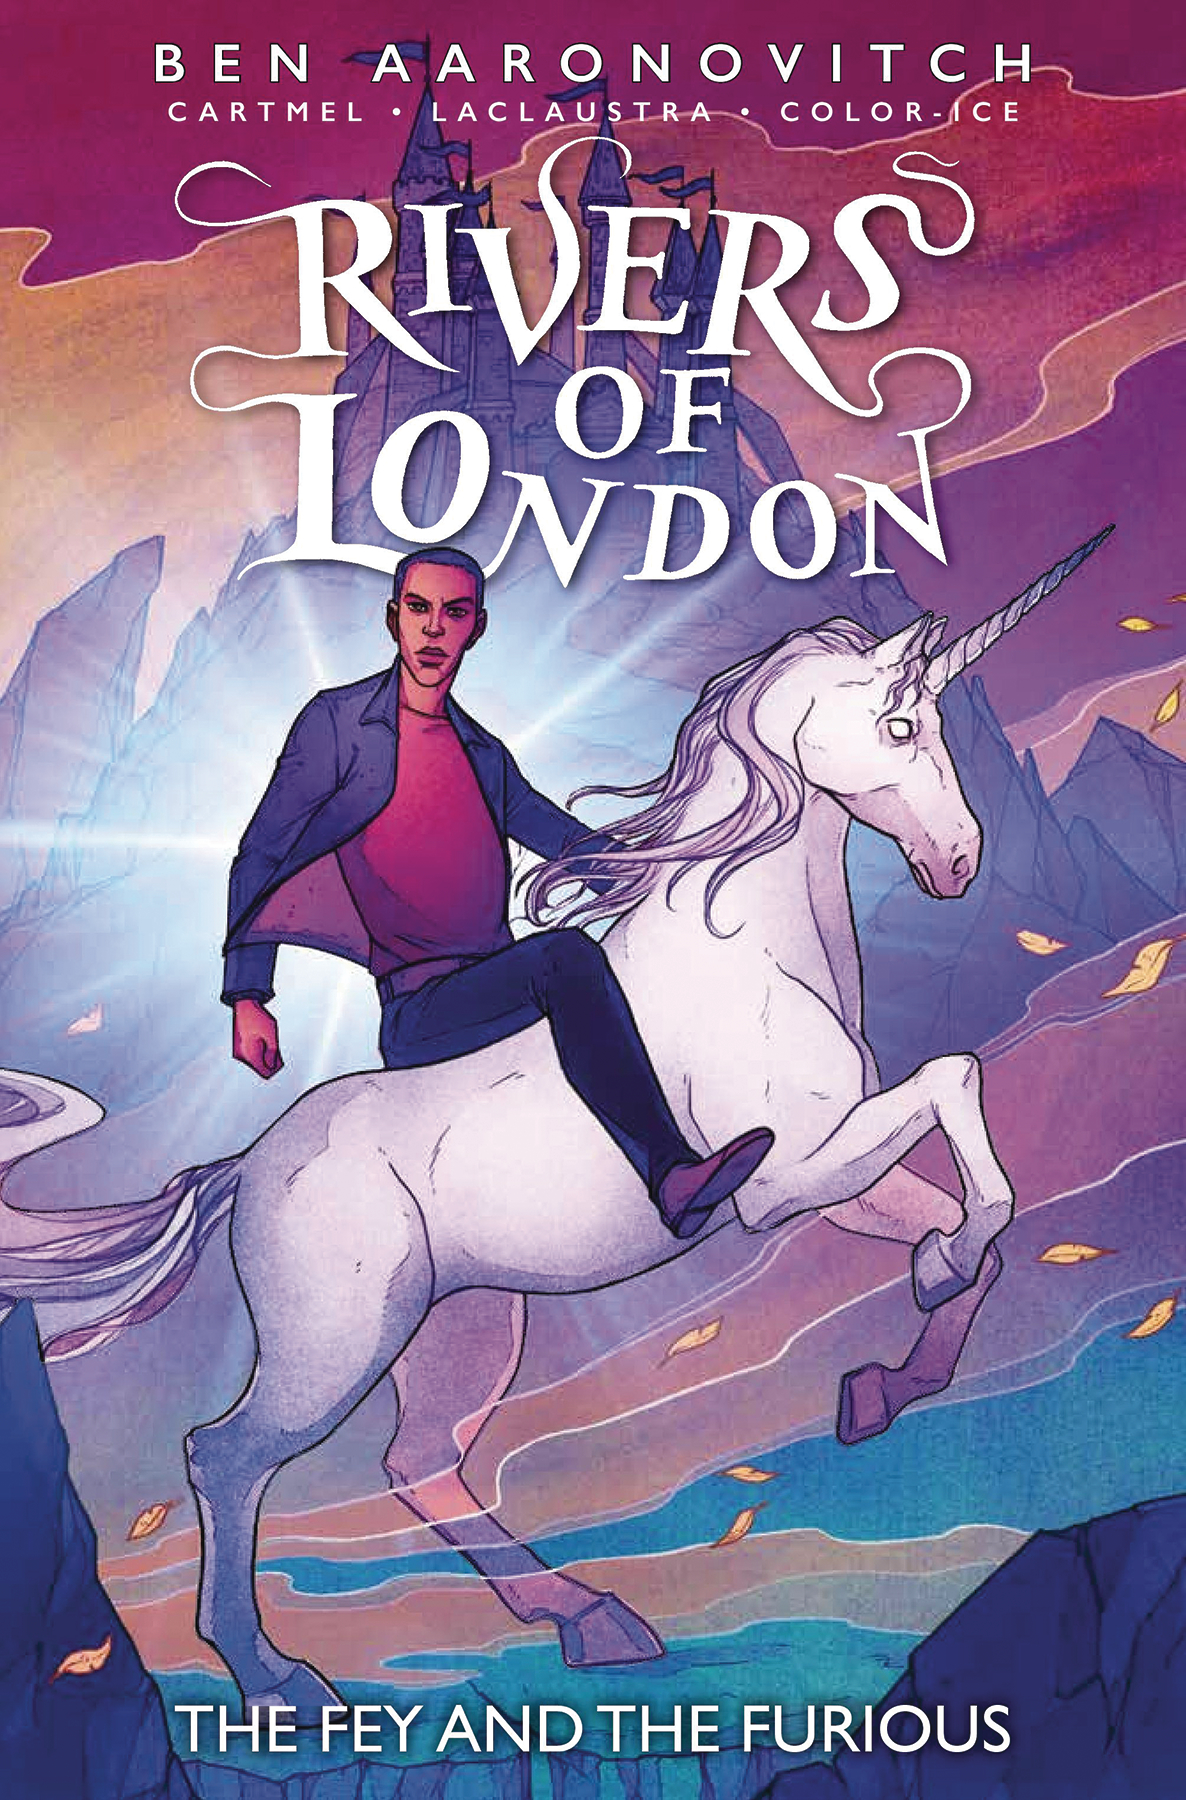 RIVERS OF LONDON FEY & THE FURIOUS #4 (MR)